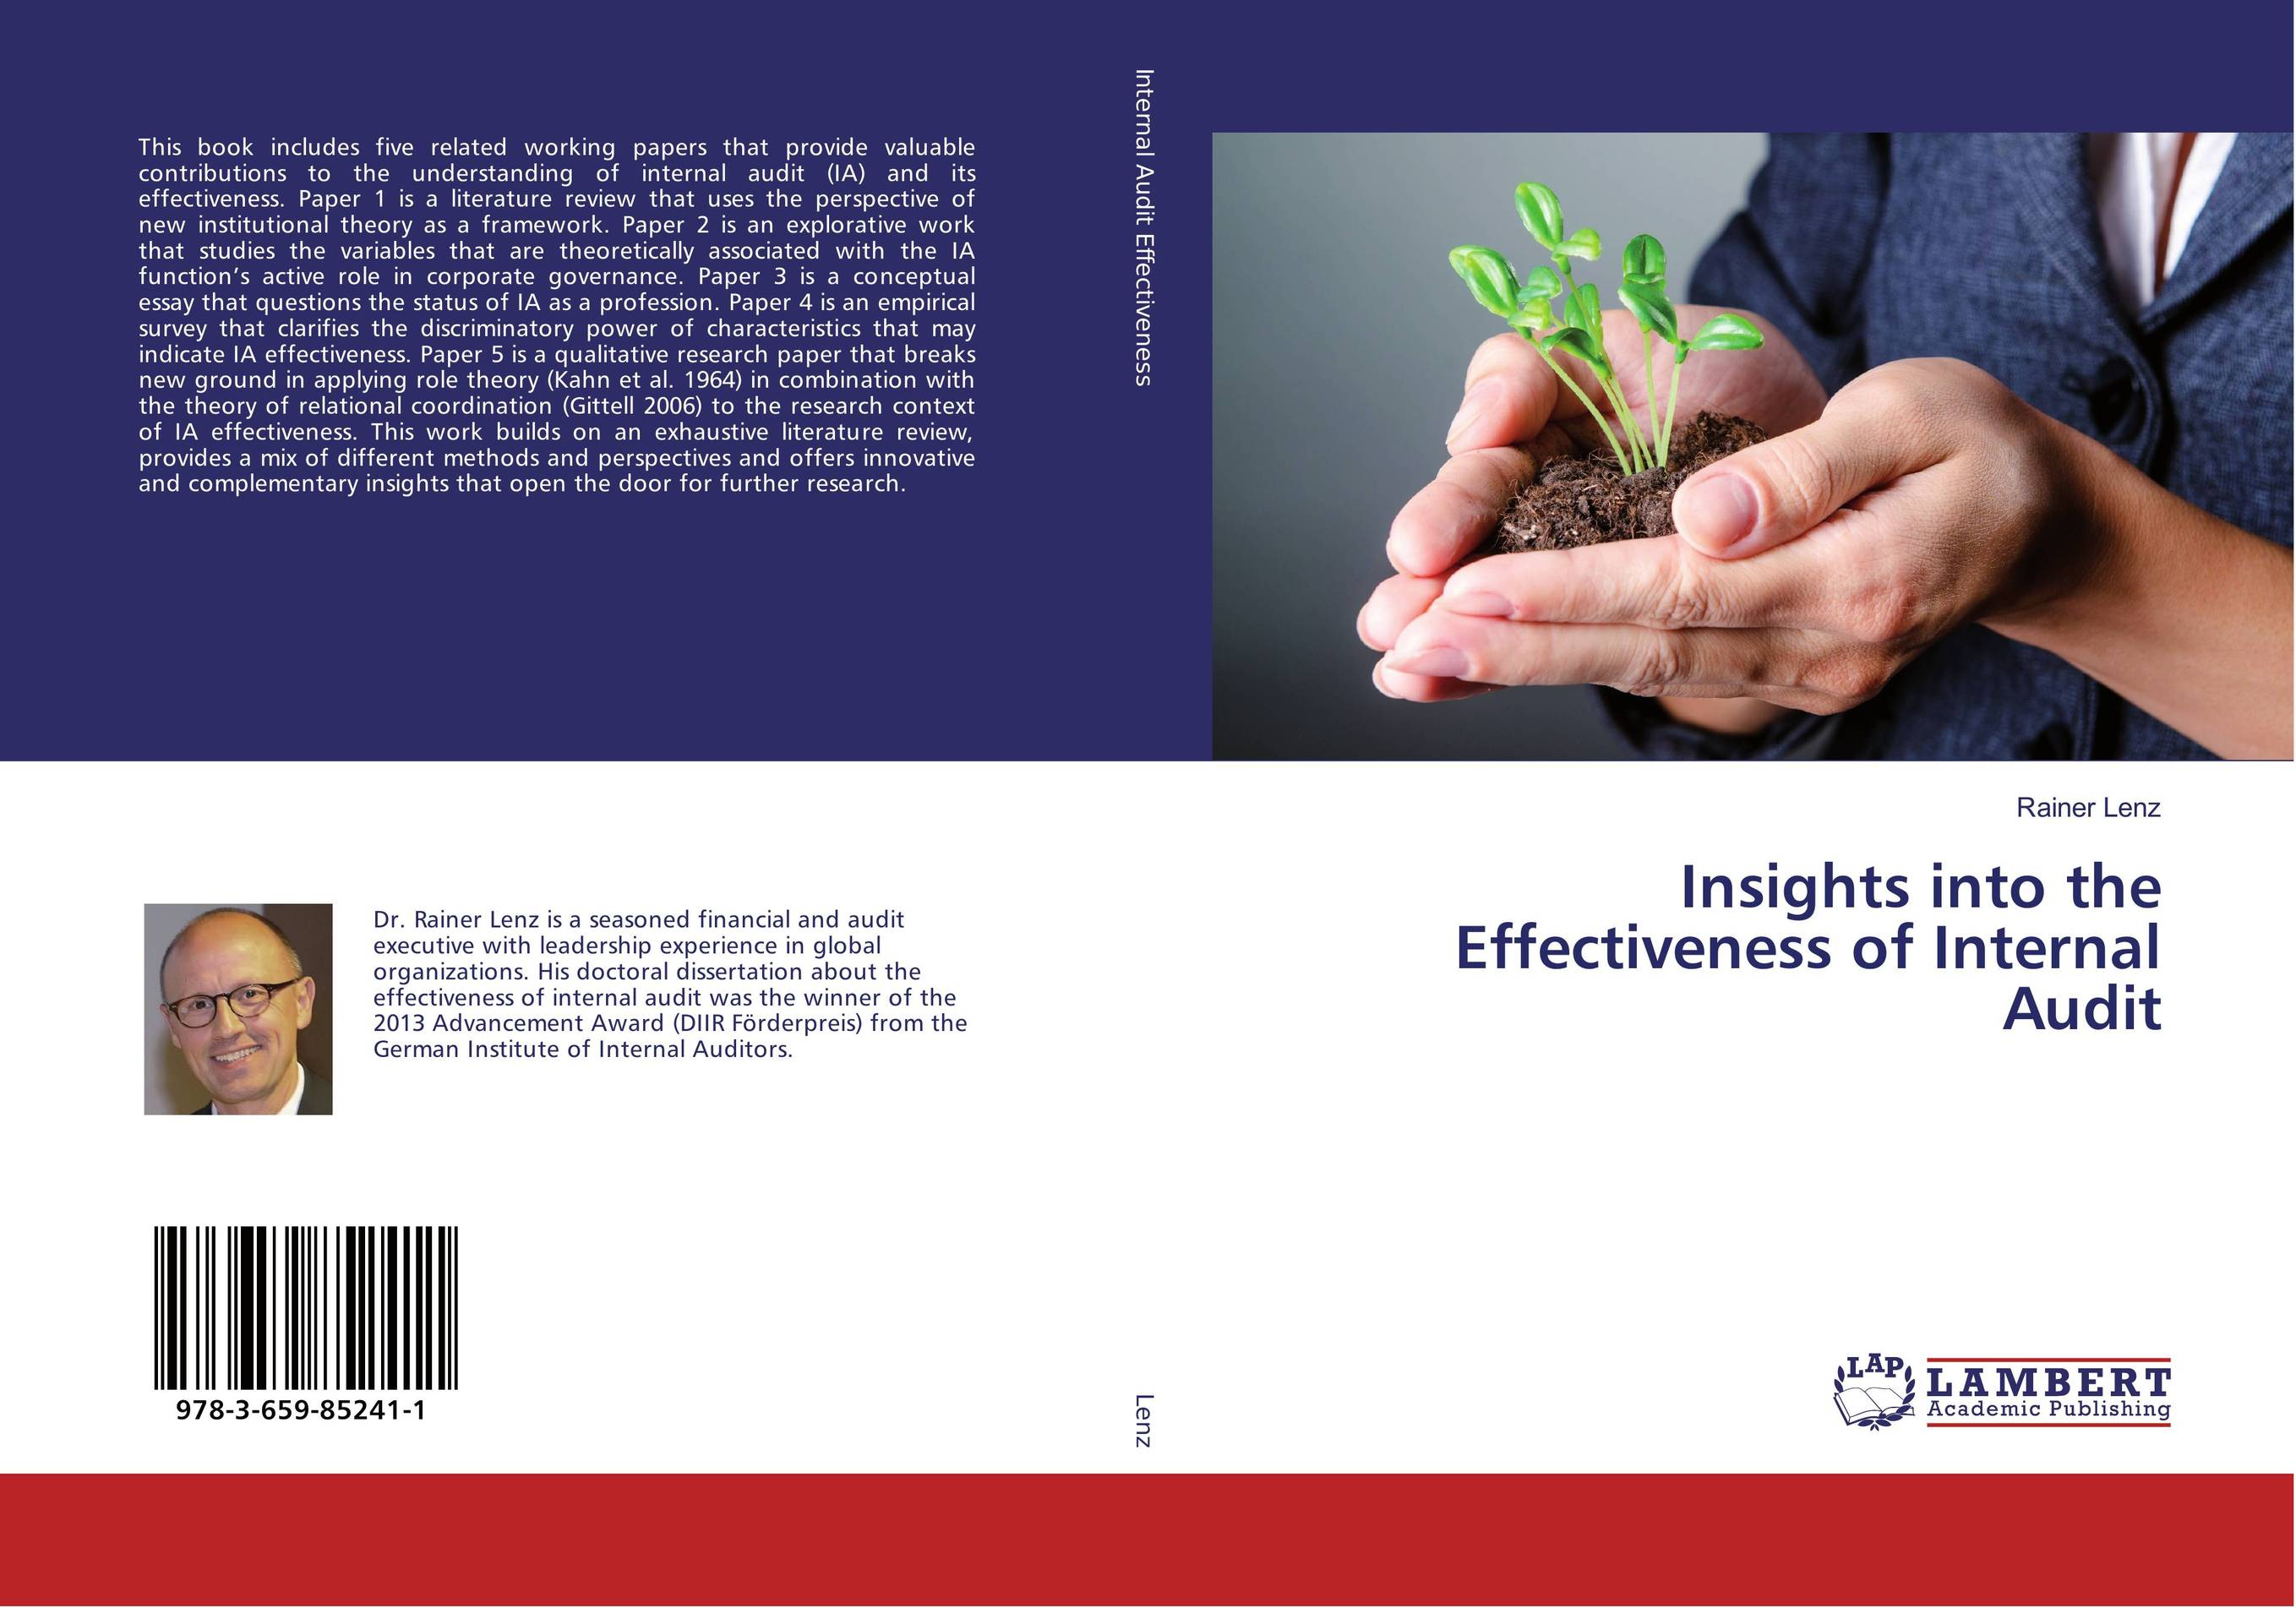 Insights into the Effectiveness of Internal Audit